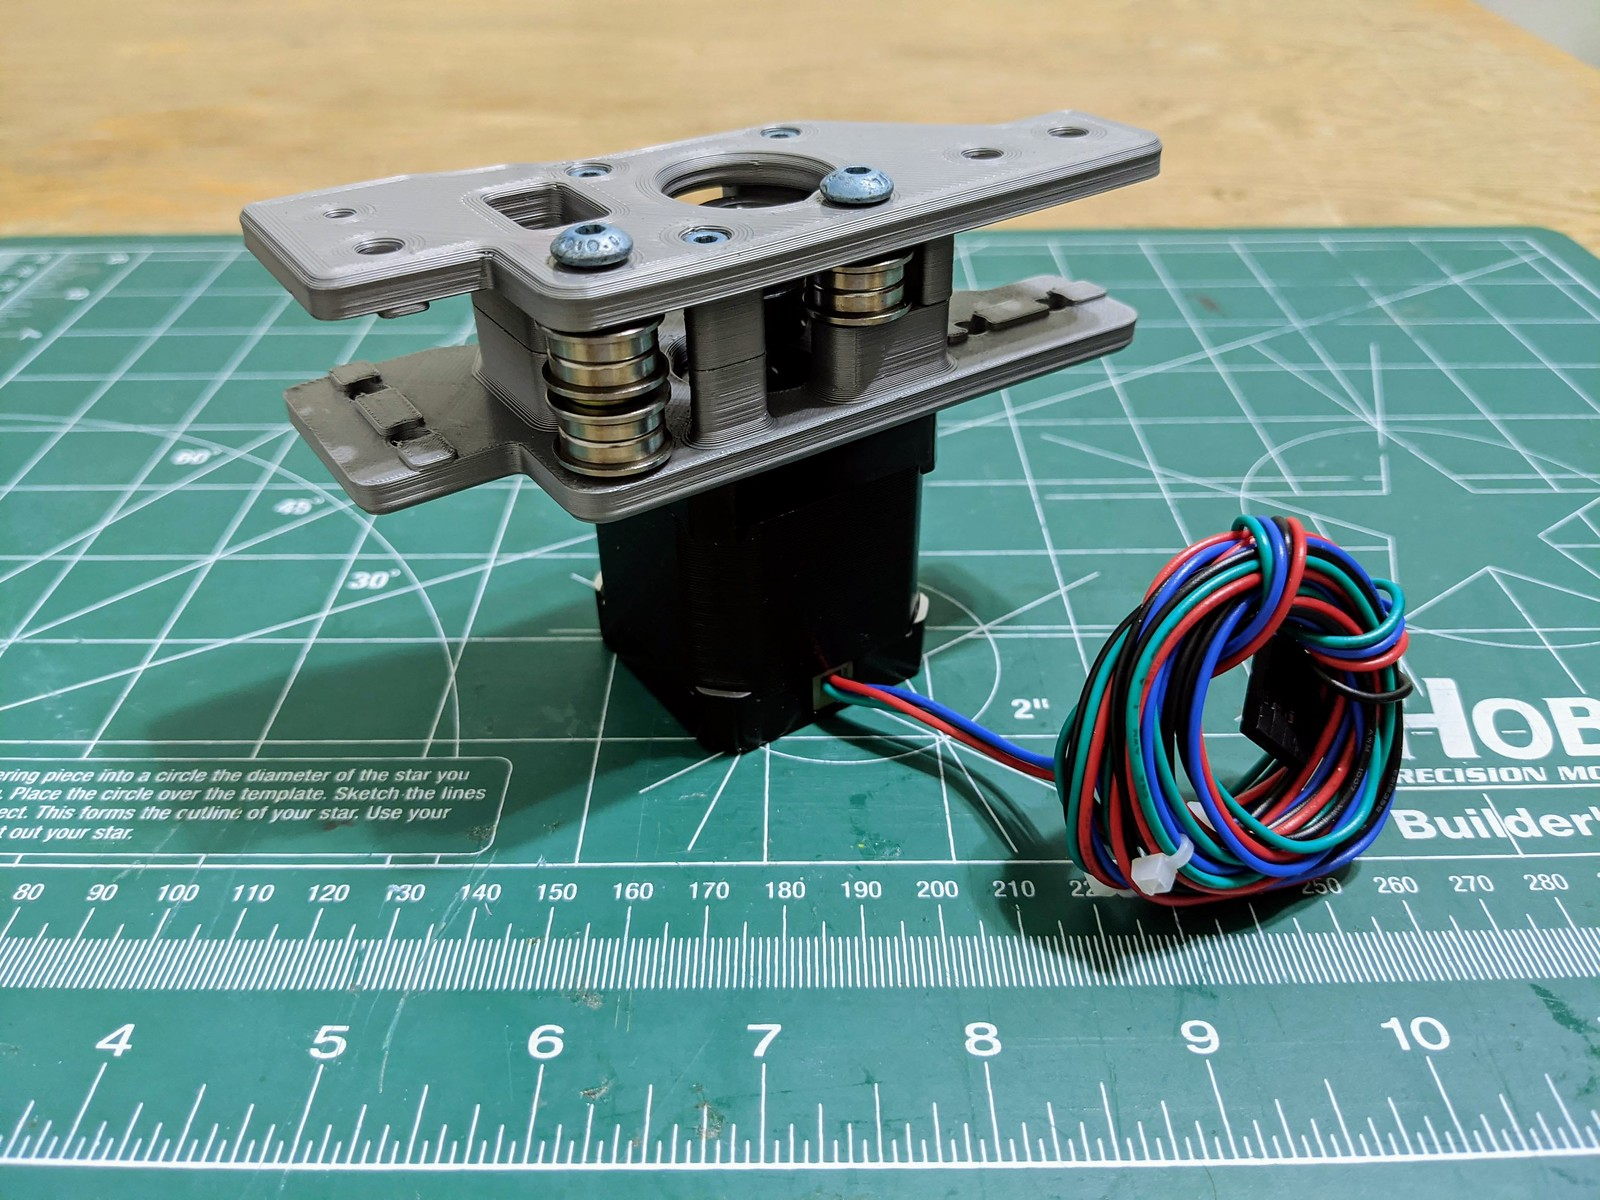 Voron v1.8. Right side motor mount